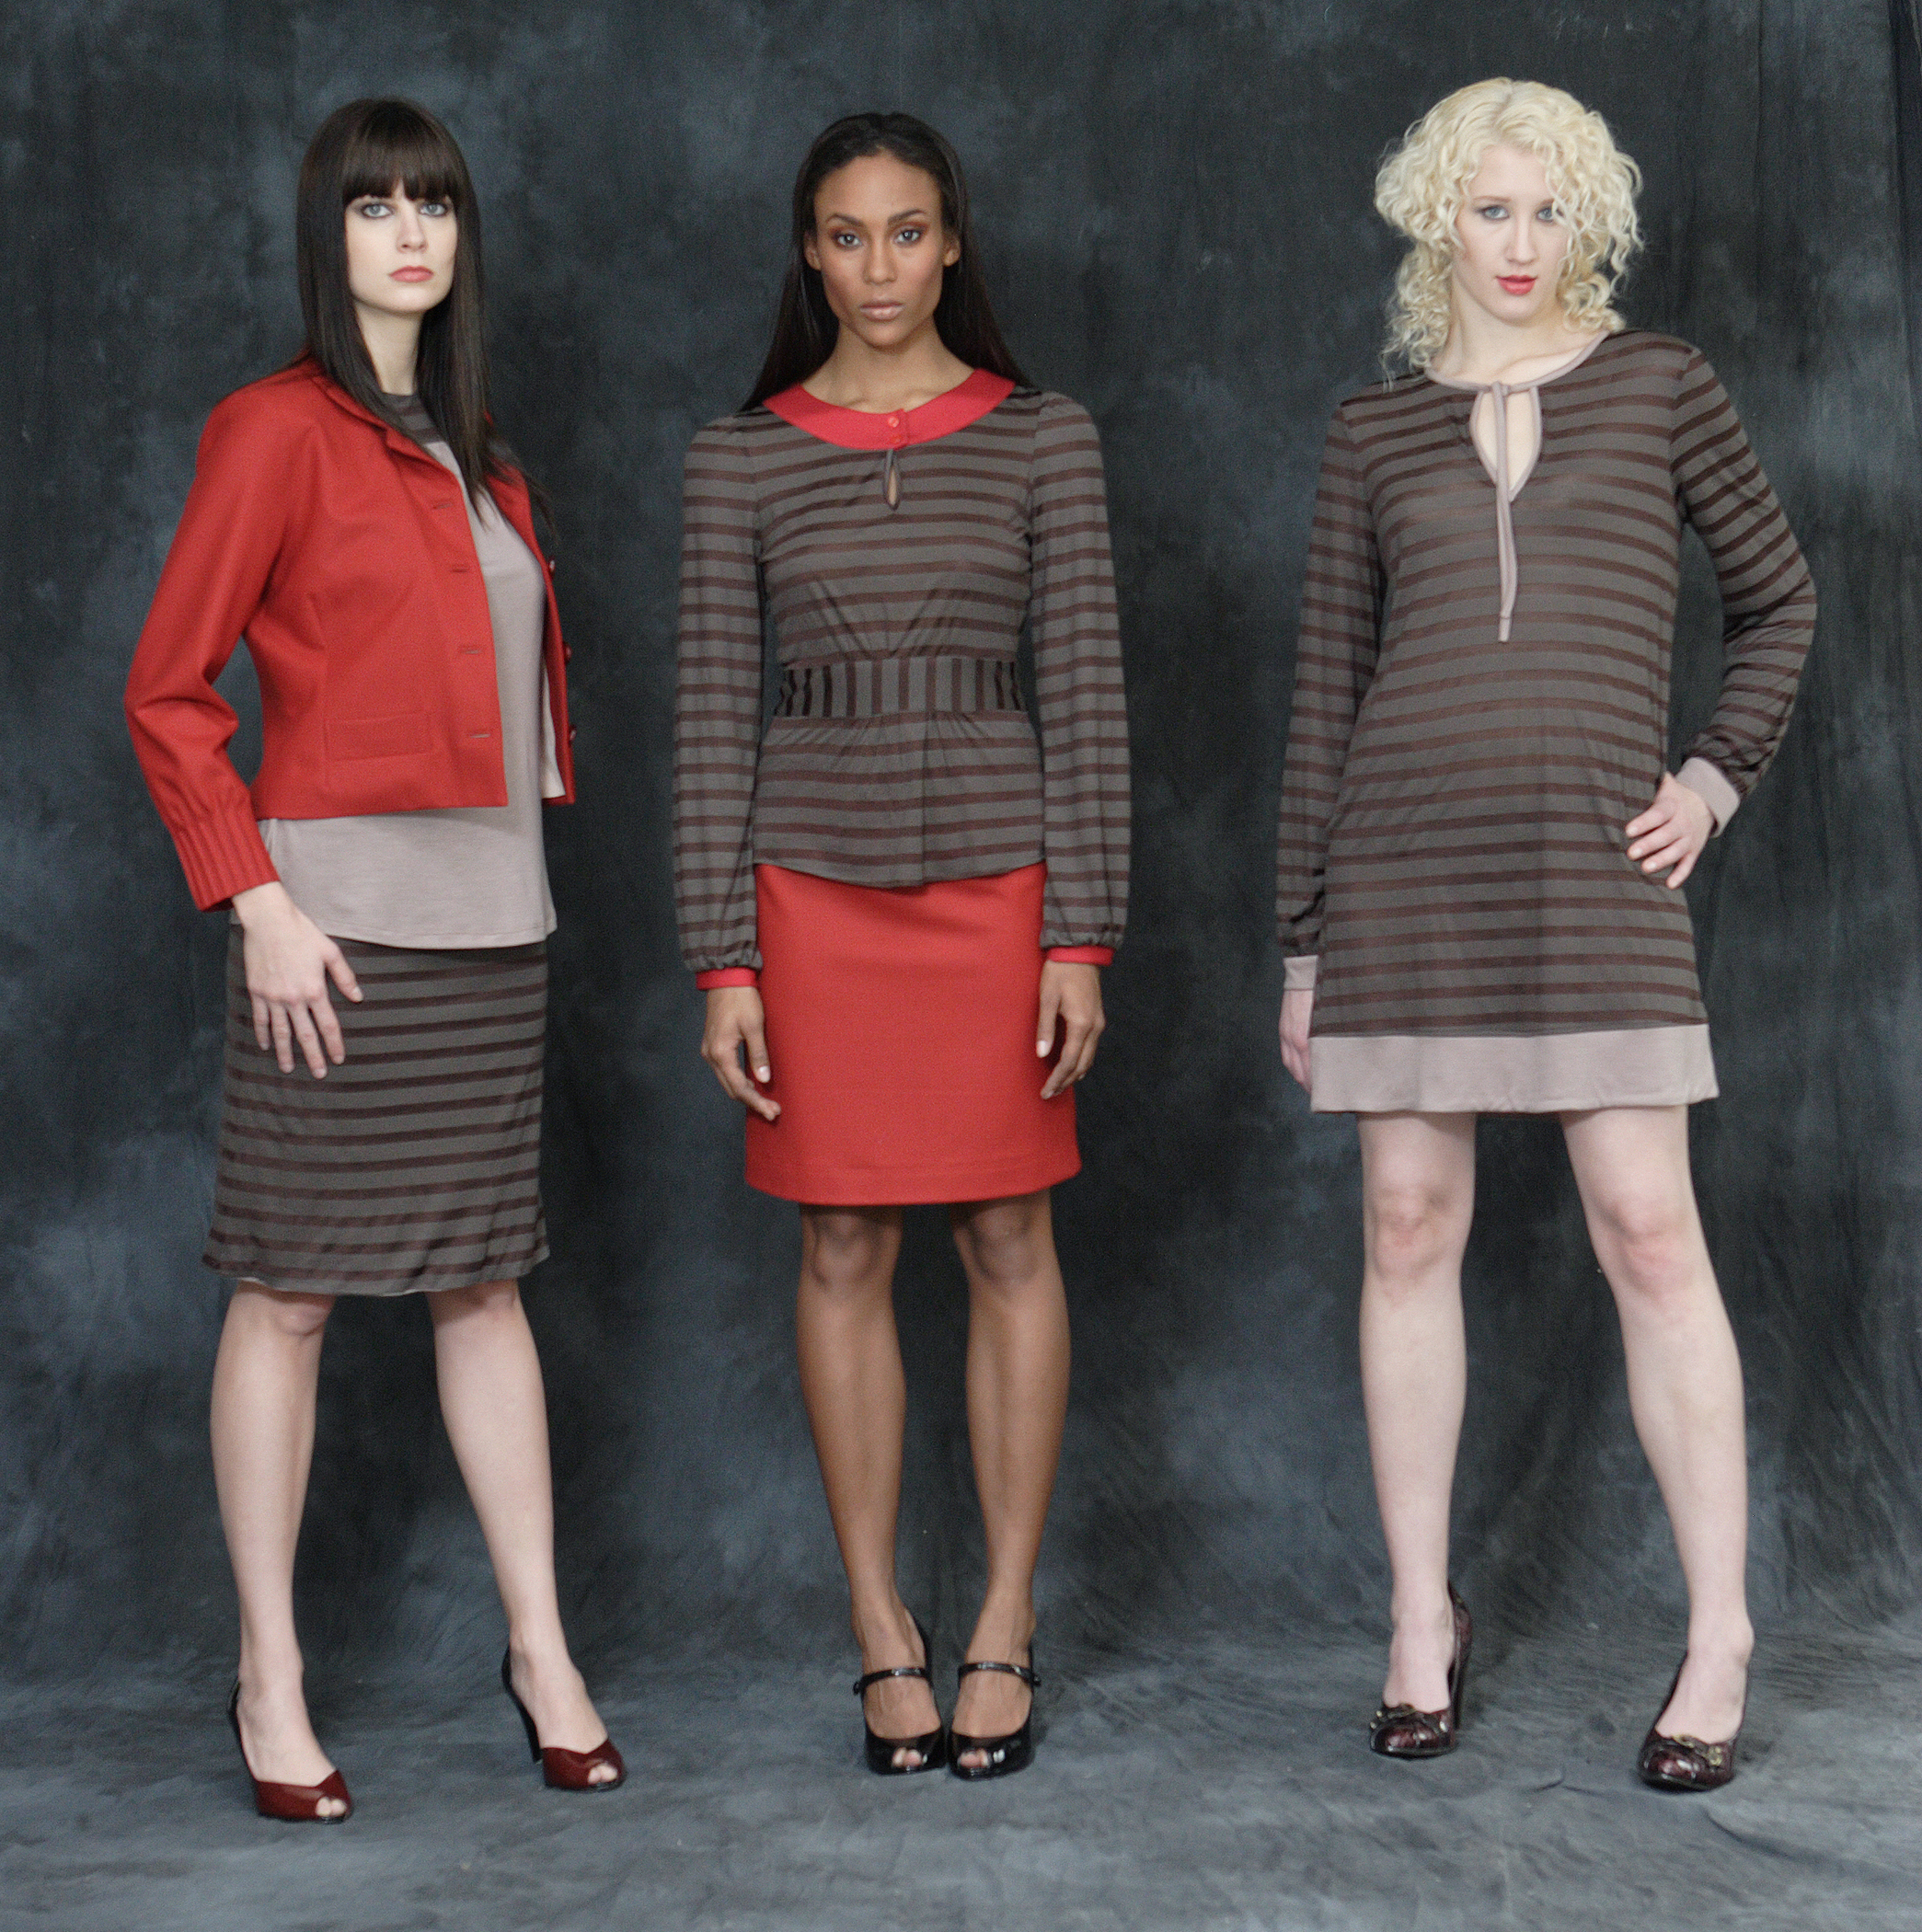 From left to right:   Stretch Wool Flannel Cropped Pin Tuck Jacket.  Jersey Bateau Shell w/ Scarf Belt.  Reversible Jersey Tube Skirt.  Jersey Banded Blouse.  Stretch Wool Flannel Quilt Stitched Mini.           Jersey Cuffed Mini Dress.